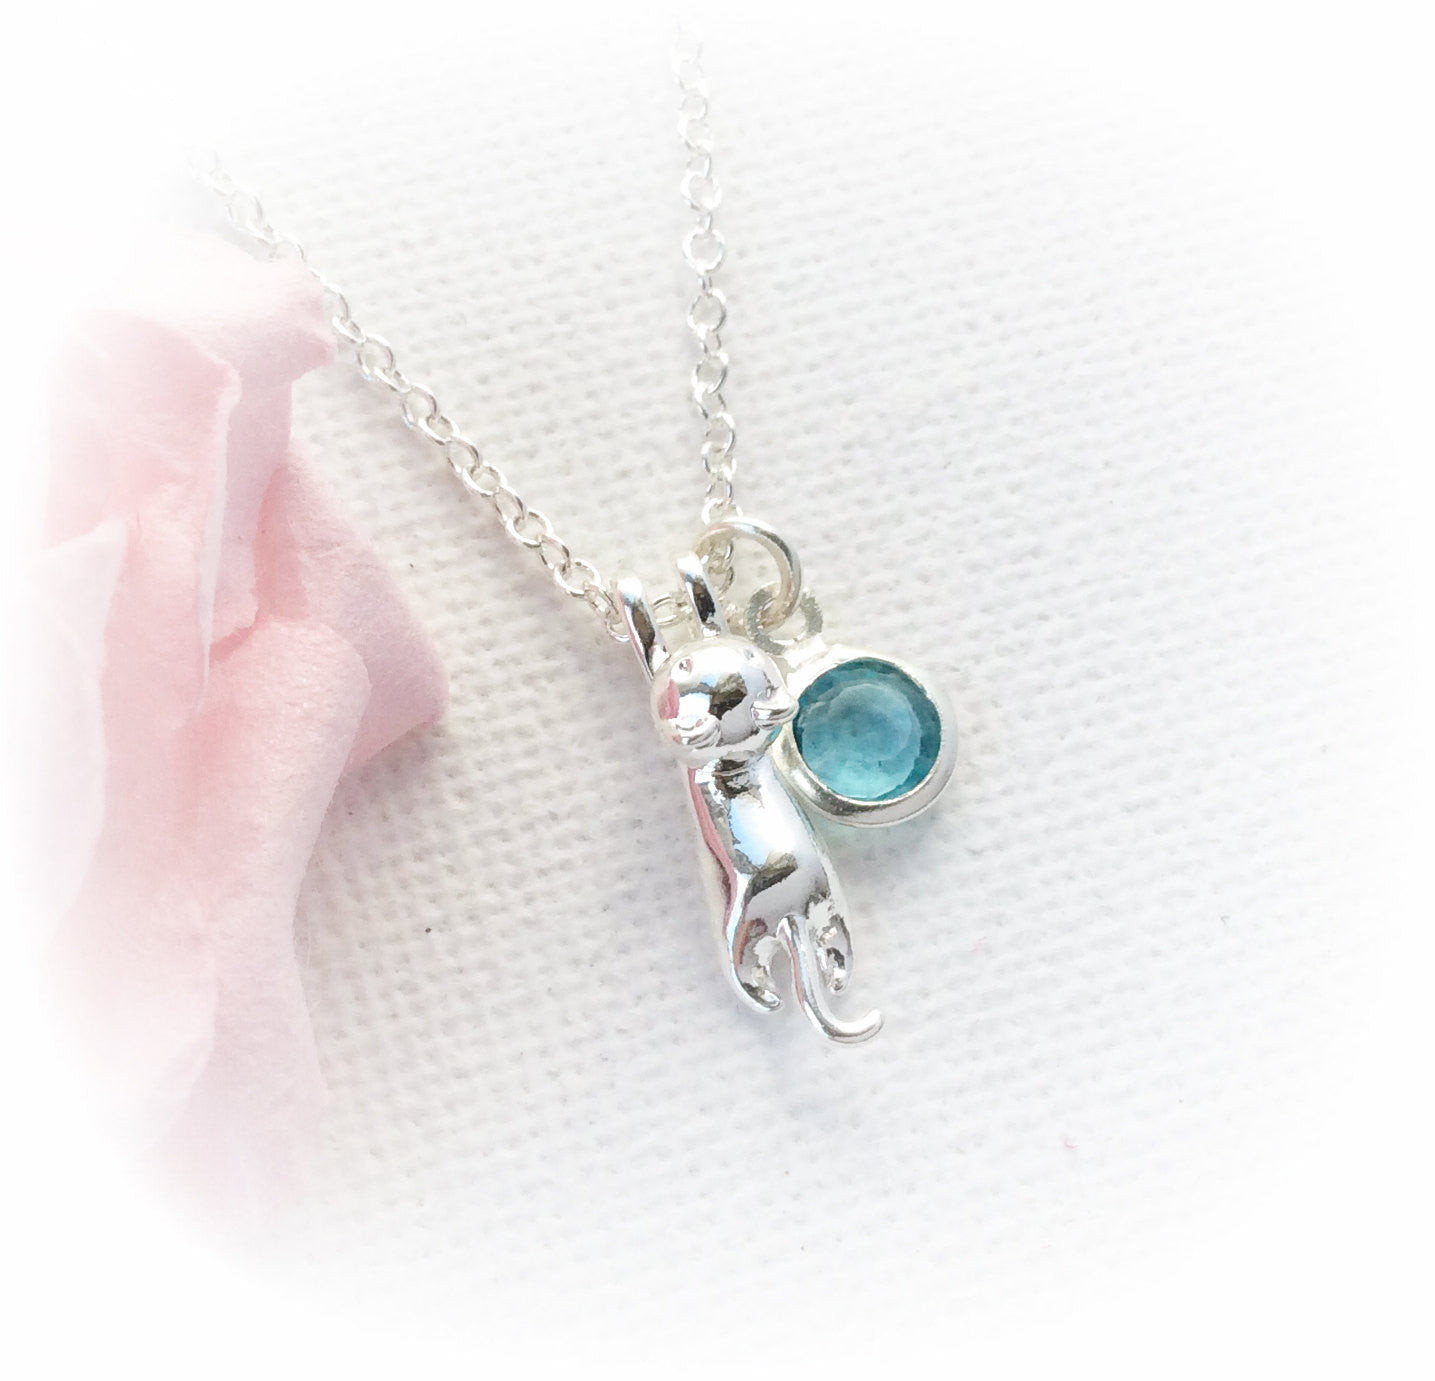 Silver cat necklace, birthstone charm custom necklace - Statement Made Jewellery